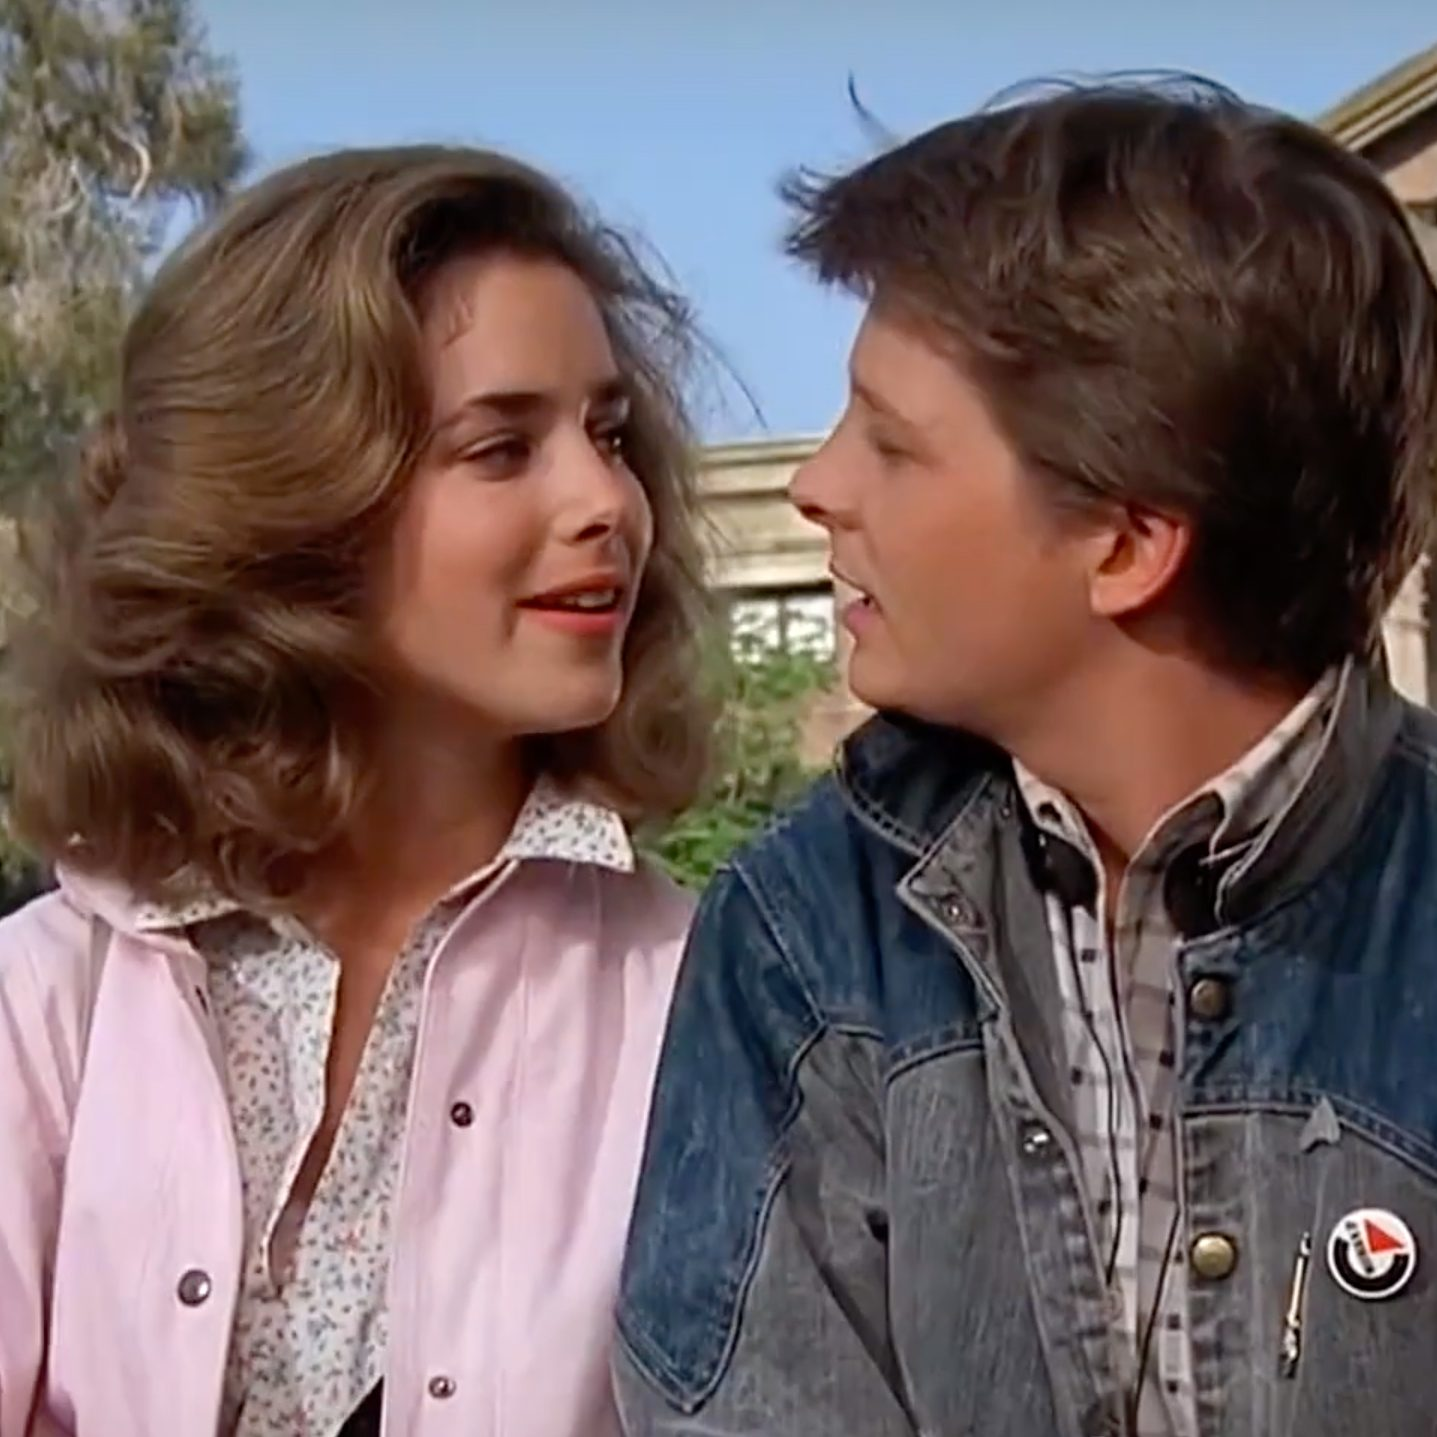 BP6BU46EYRDRBFJGMFHV2TQNIM e1600094812214 20 Things You Missed In Back To The Future